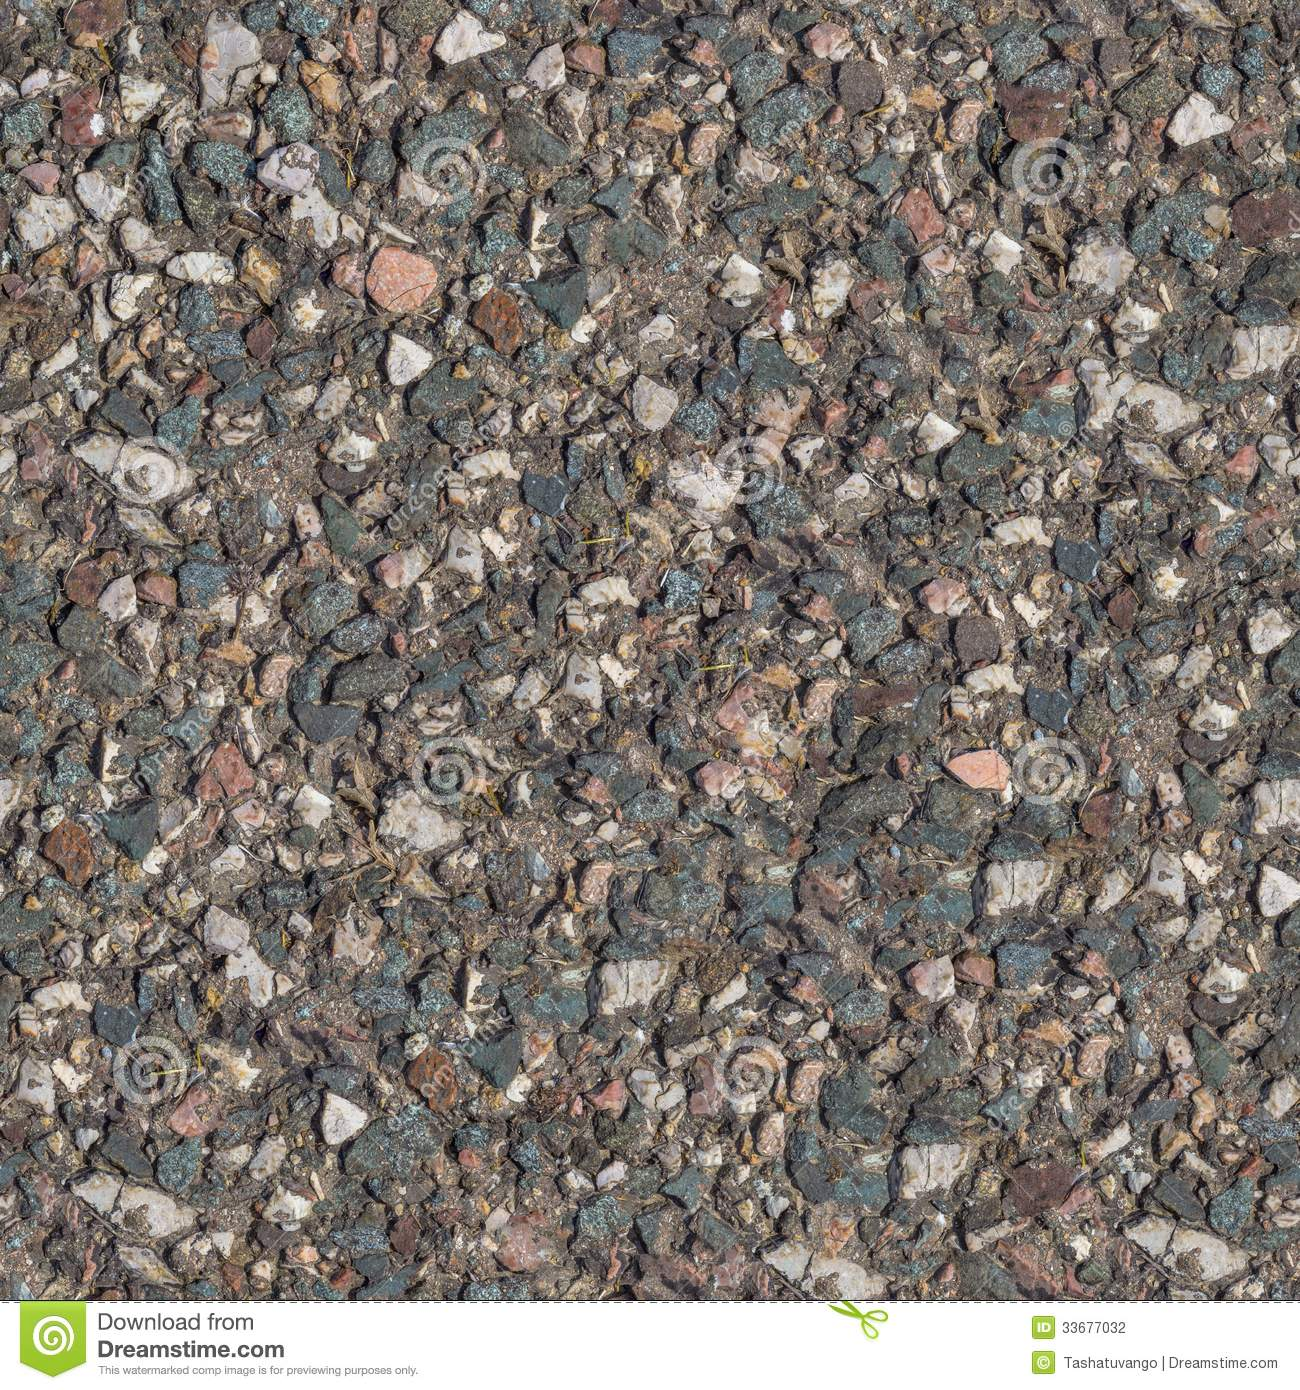 Seamless Tileable Texture of Fragment of Old Stone Country Road  Small    Seamless Stone Road Texture